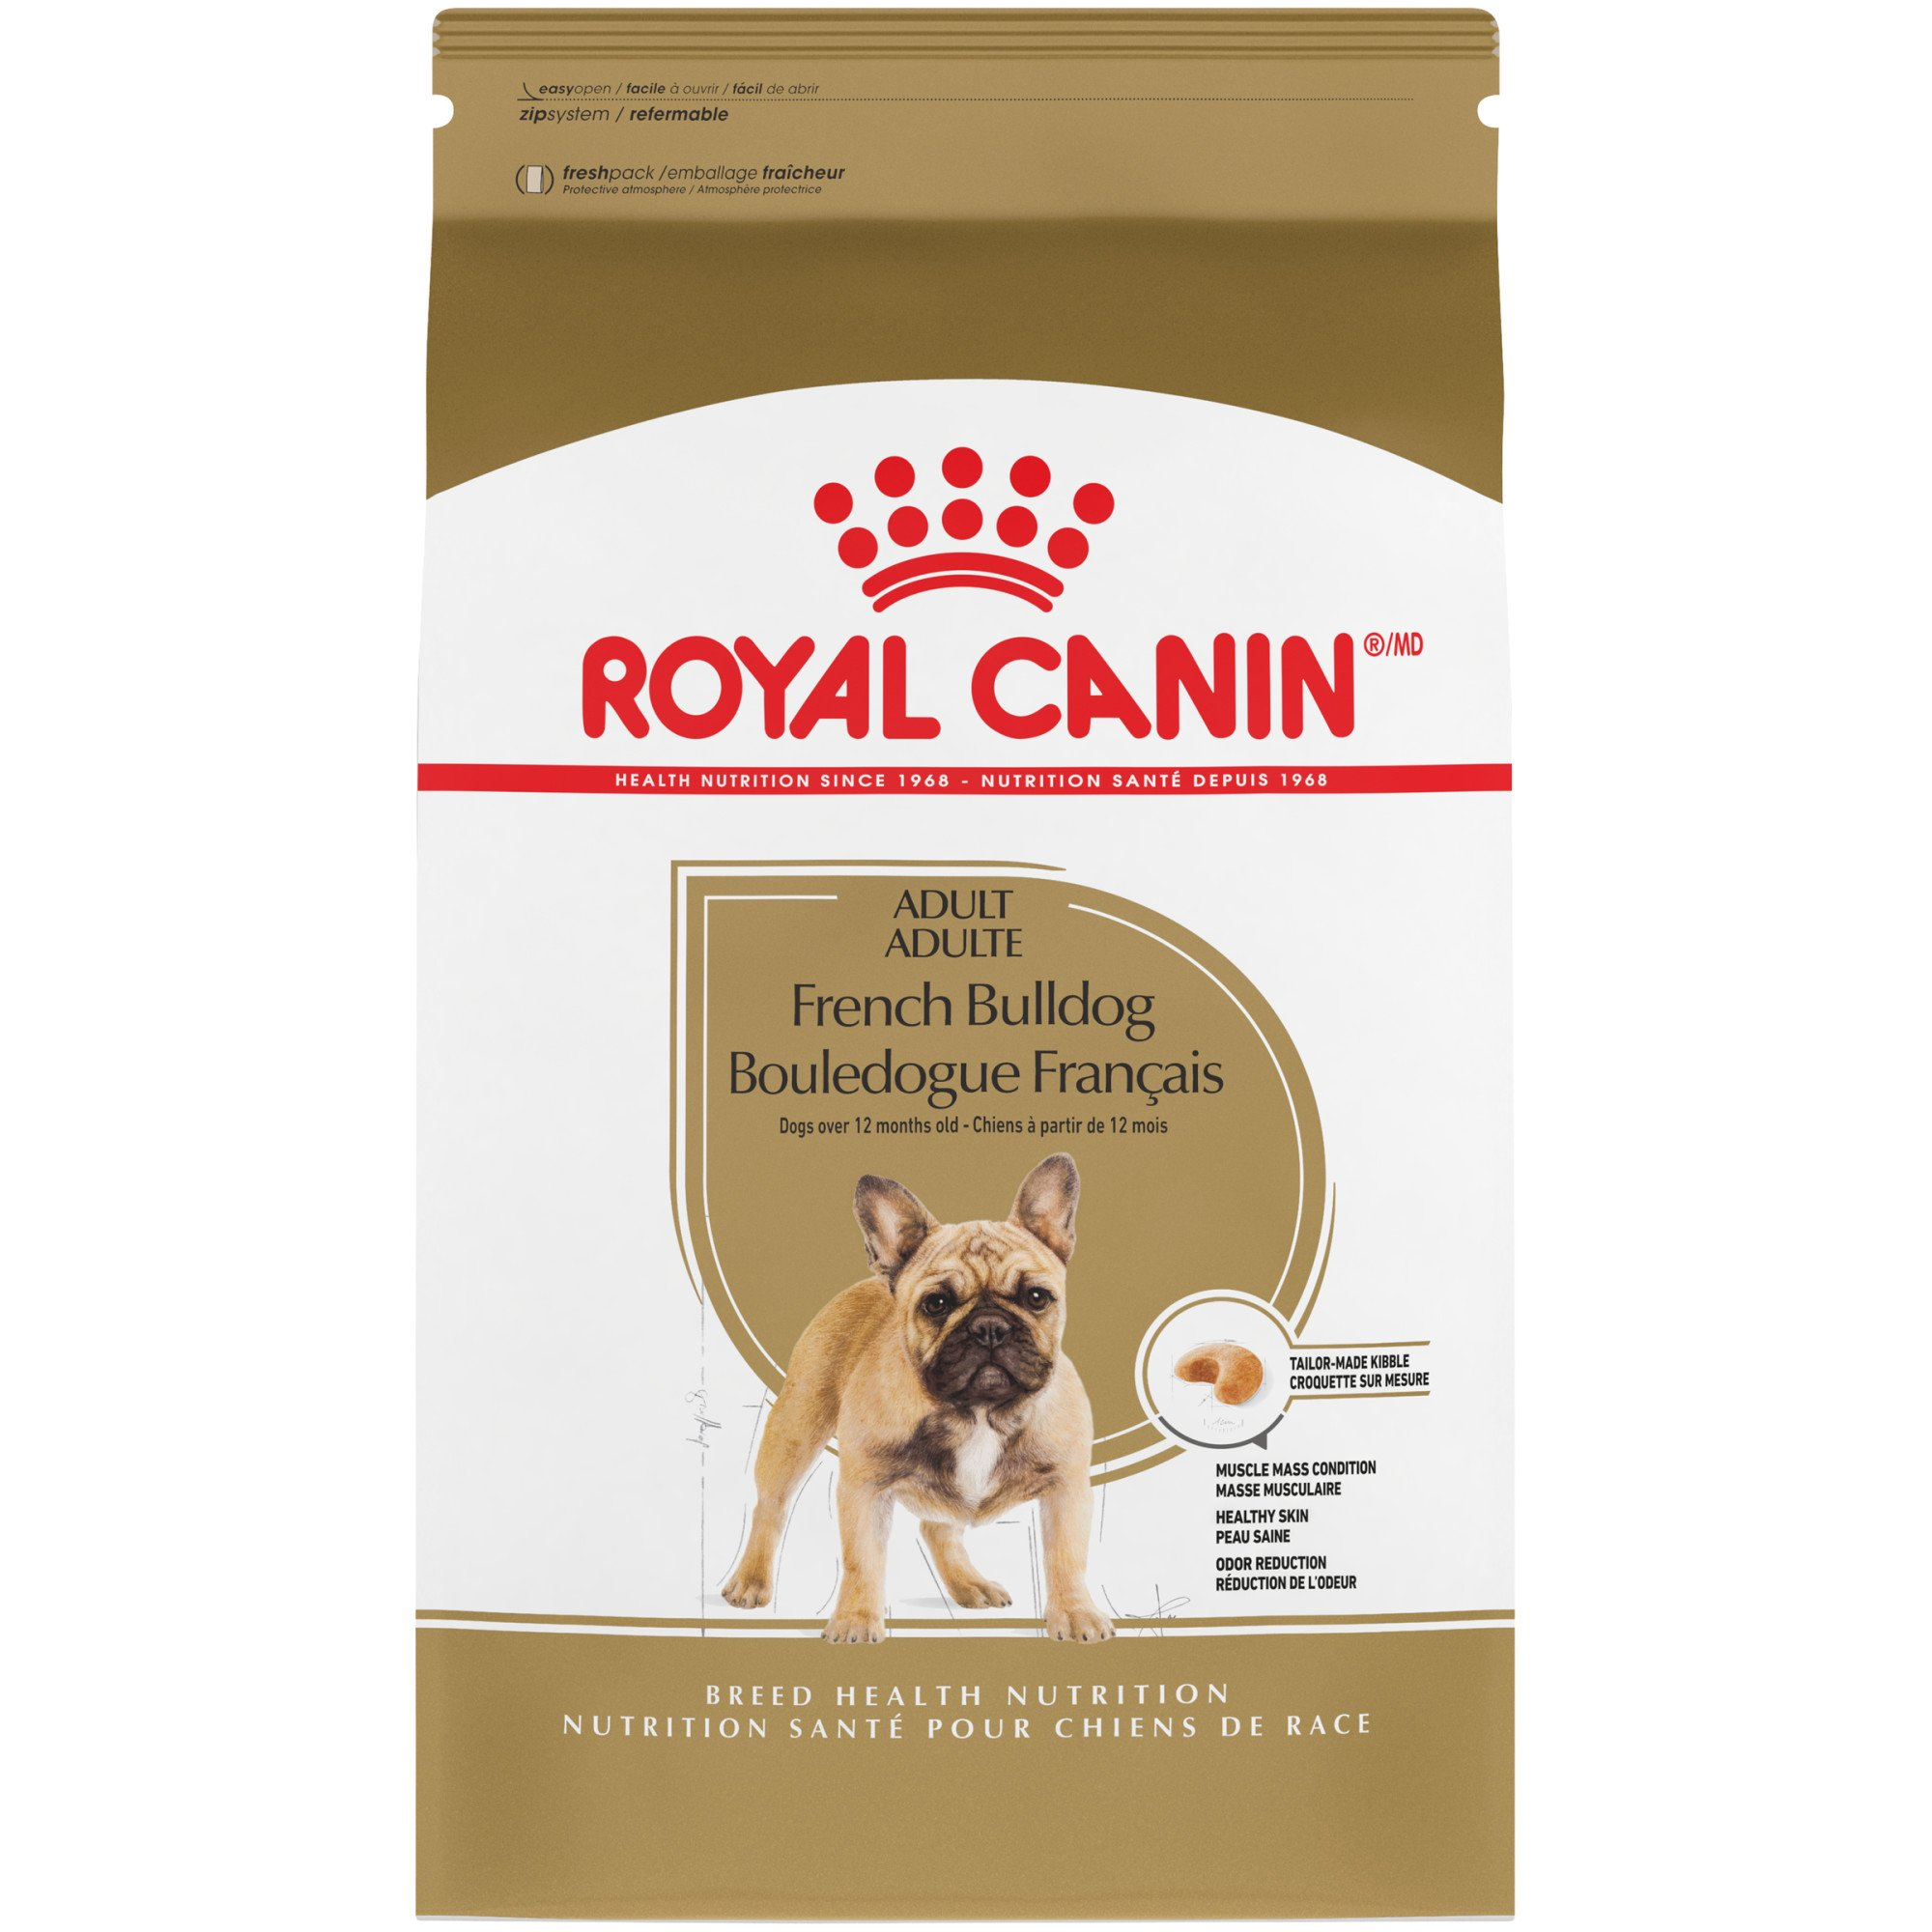 royal canin breed health nutrition french bulldog adult. Black Bedroom Furniture Sets. Home Design Ideas